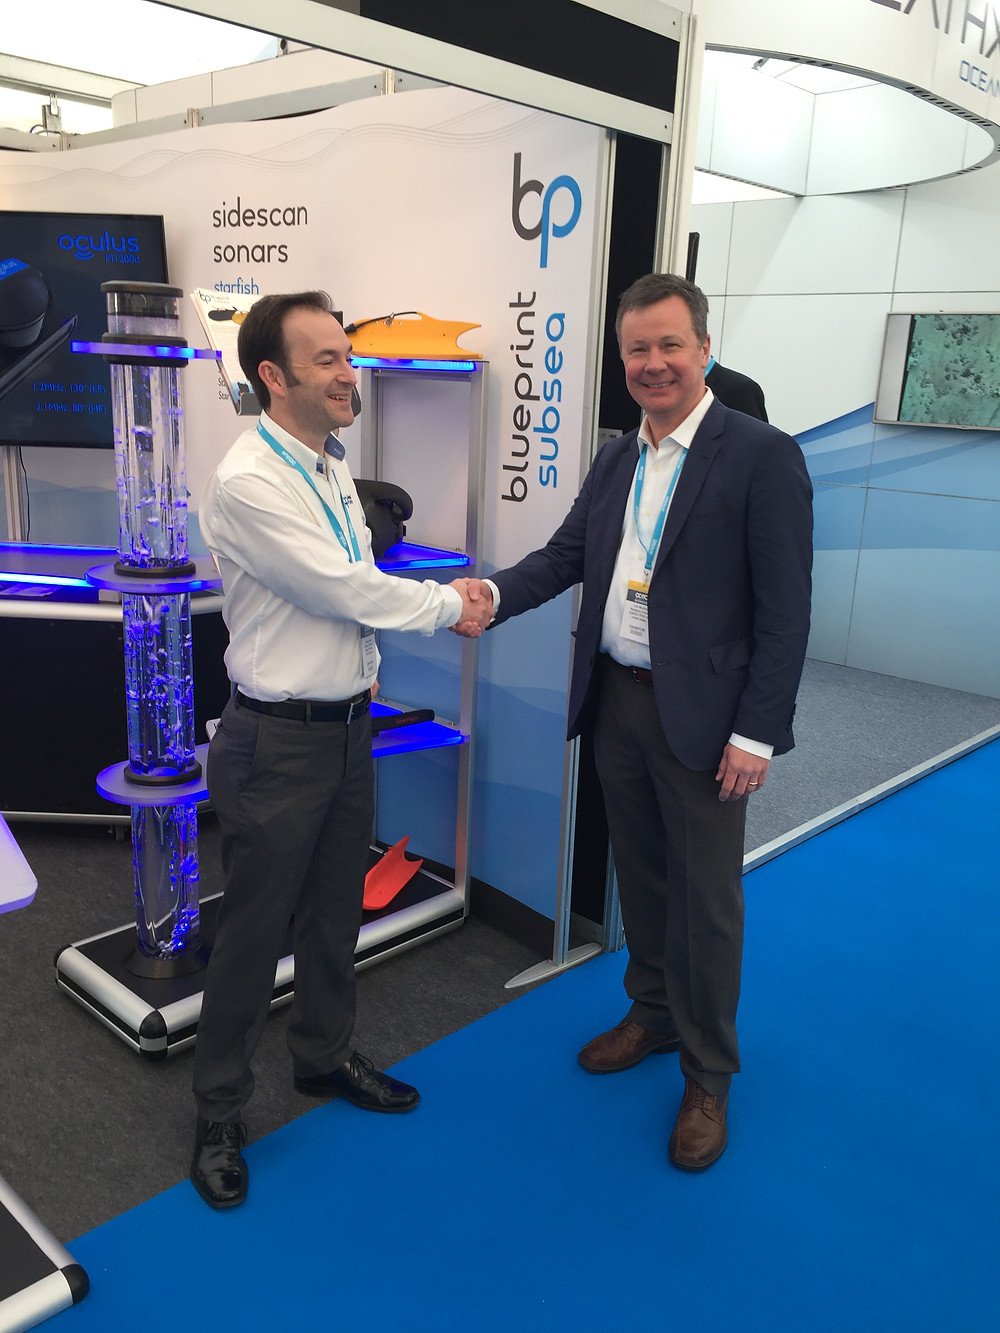 James Barratt (left), Managing Director of Blueprint Subsea with Eric Munday (right) of SUBSEA 20/20 at Ocean Business in Southampton, England.